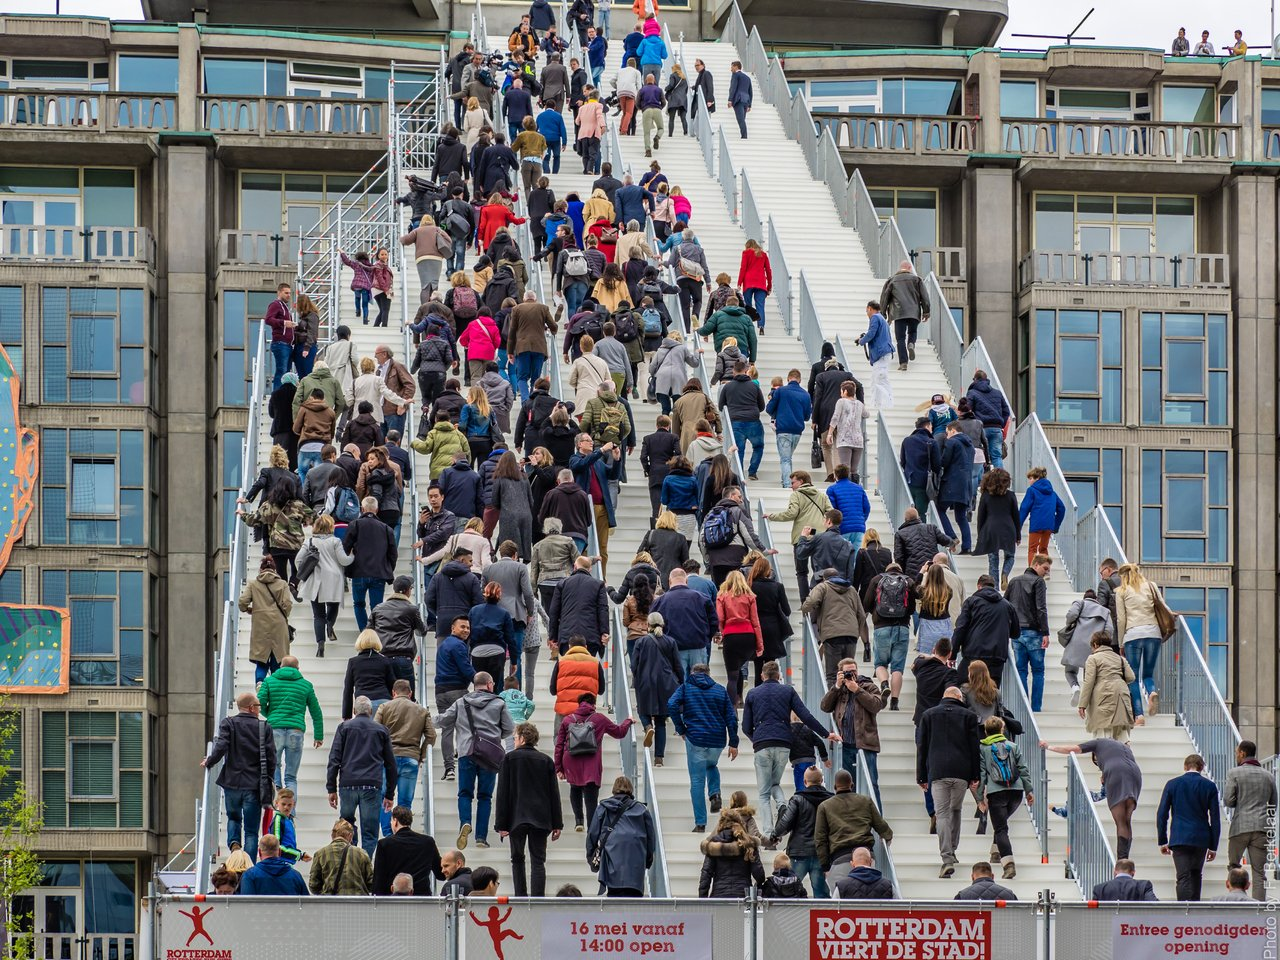 people walking onto huge stairs build in Rotterdam, Netherlands